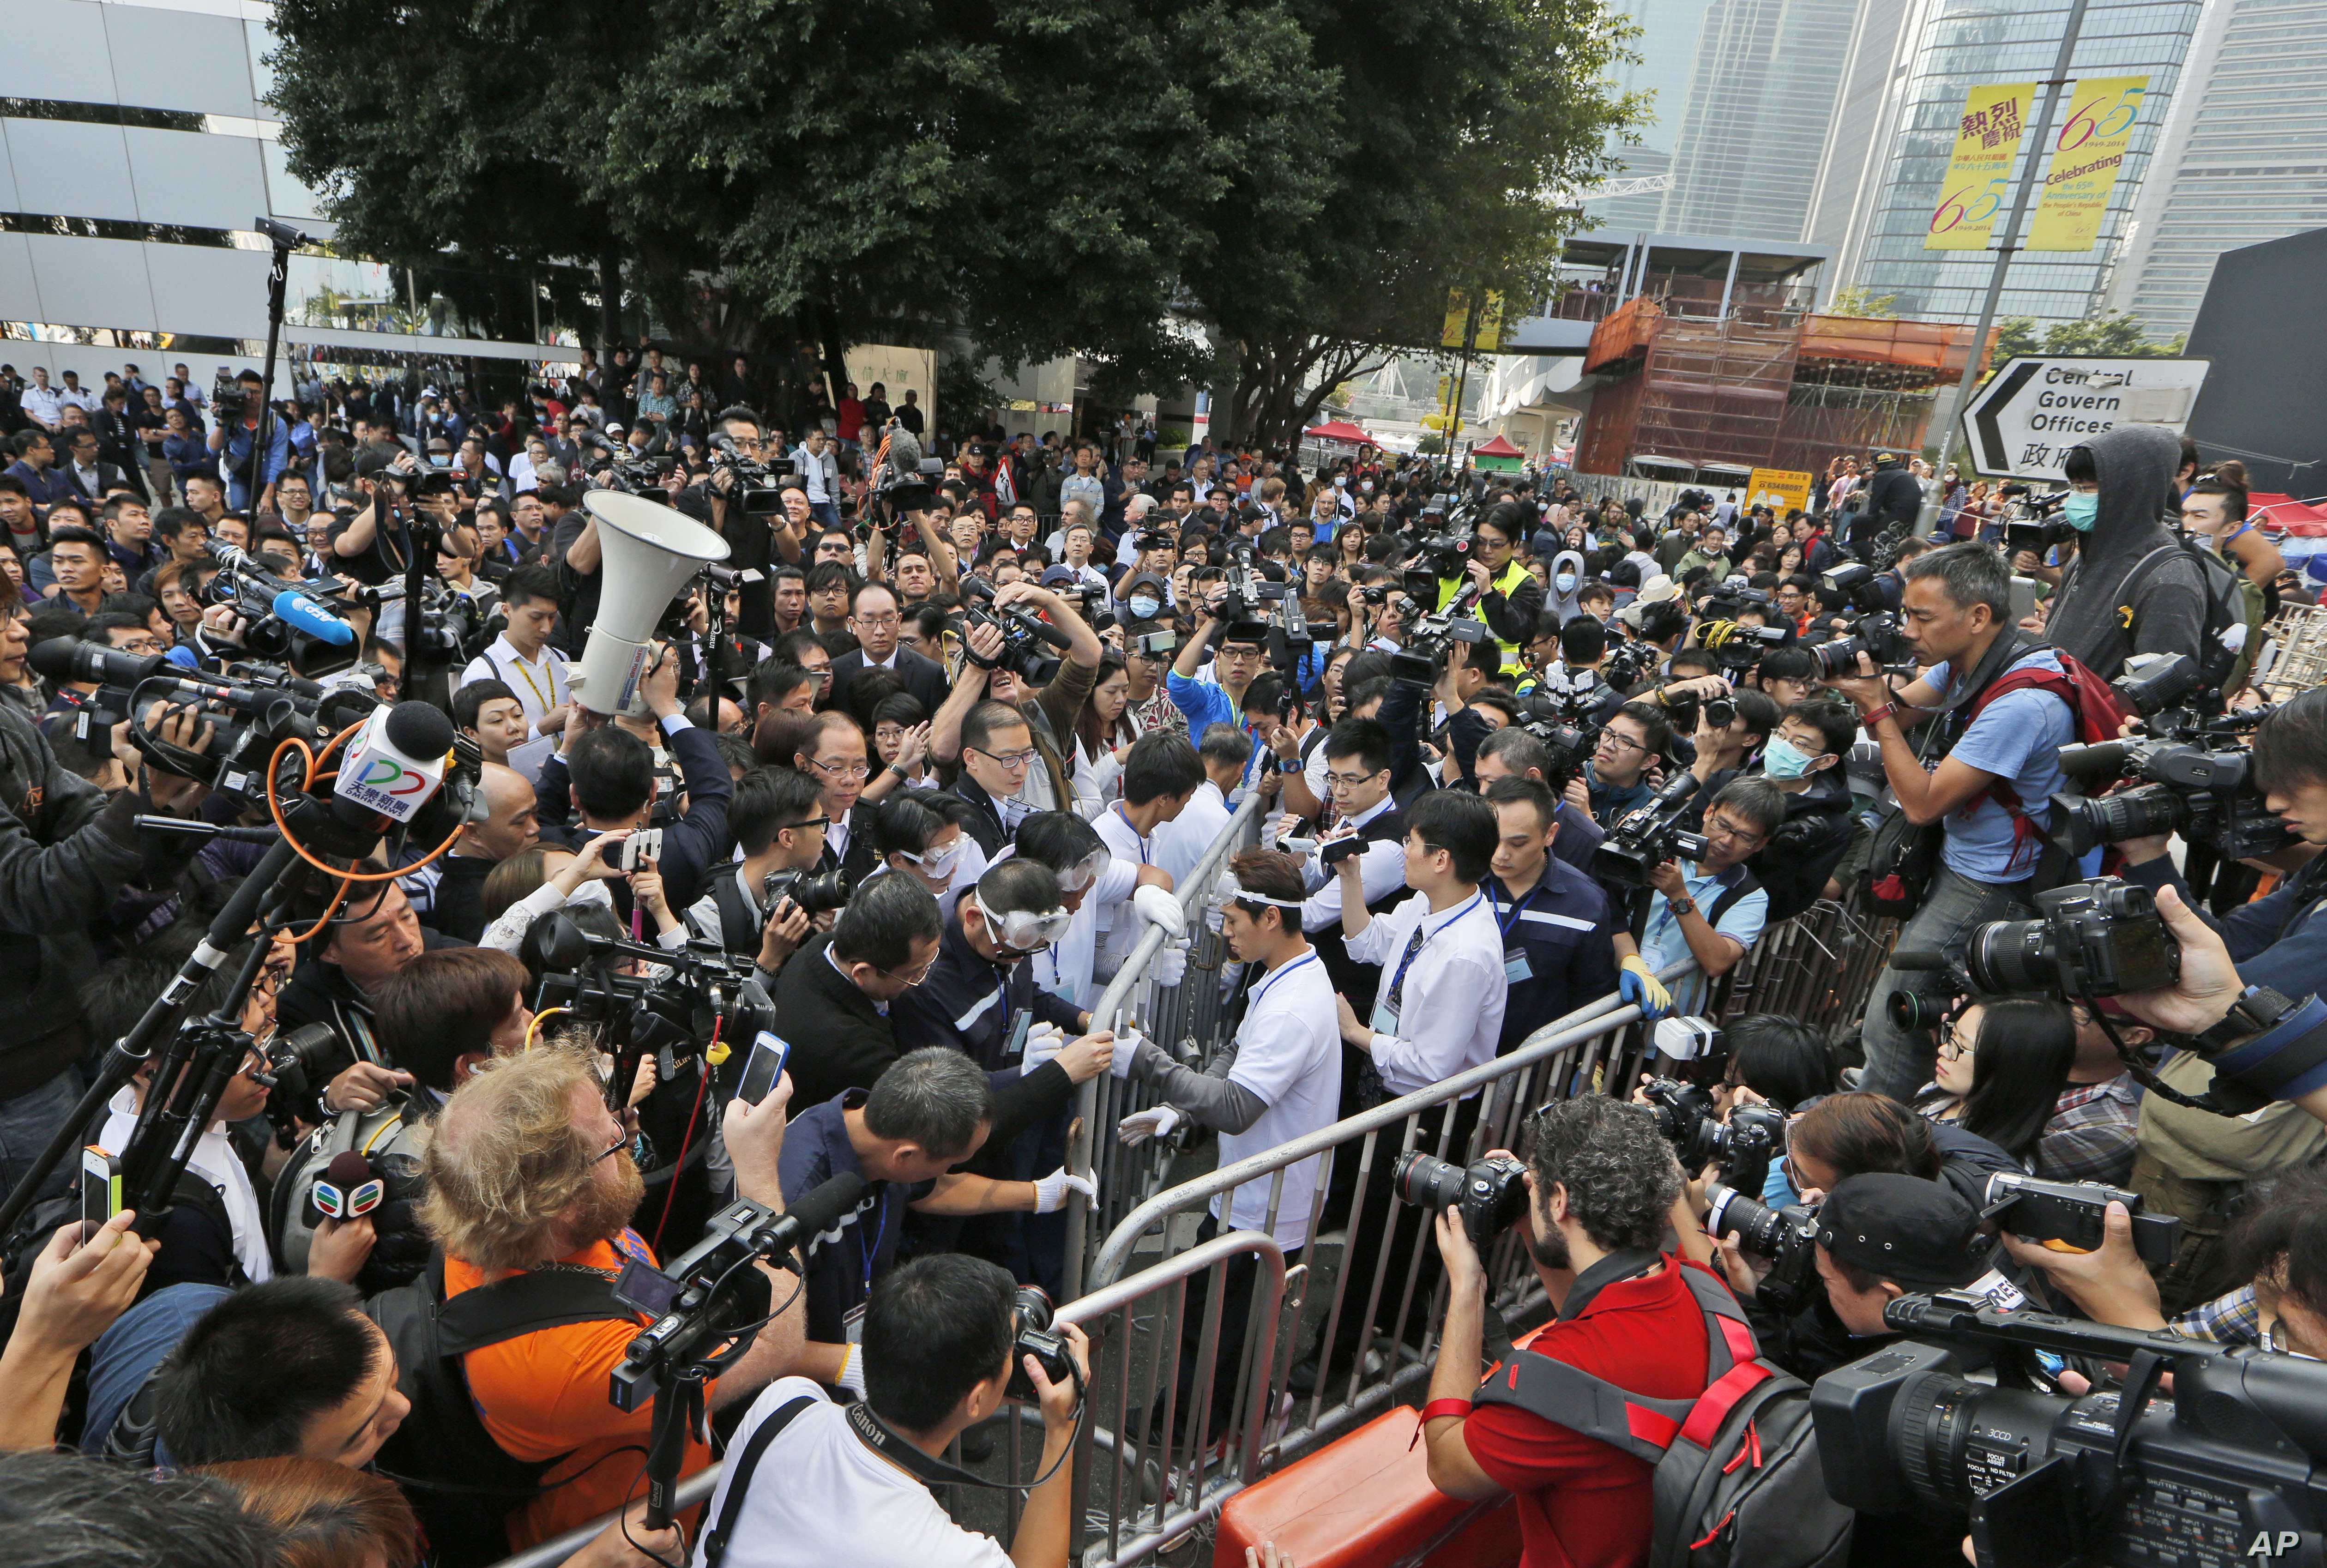 Workers, center, start clearing away barricades at an occupied area outside government headquarters in Hong Kong, Nov. 18, 2014.